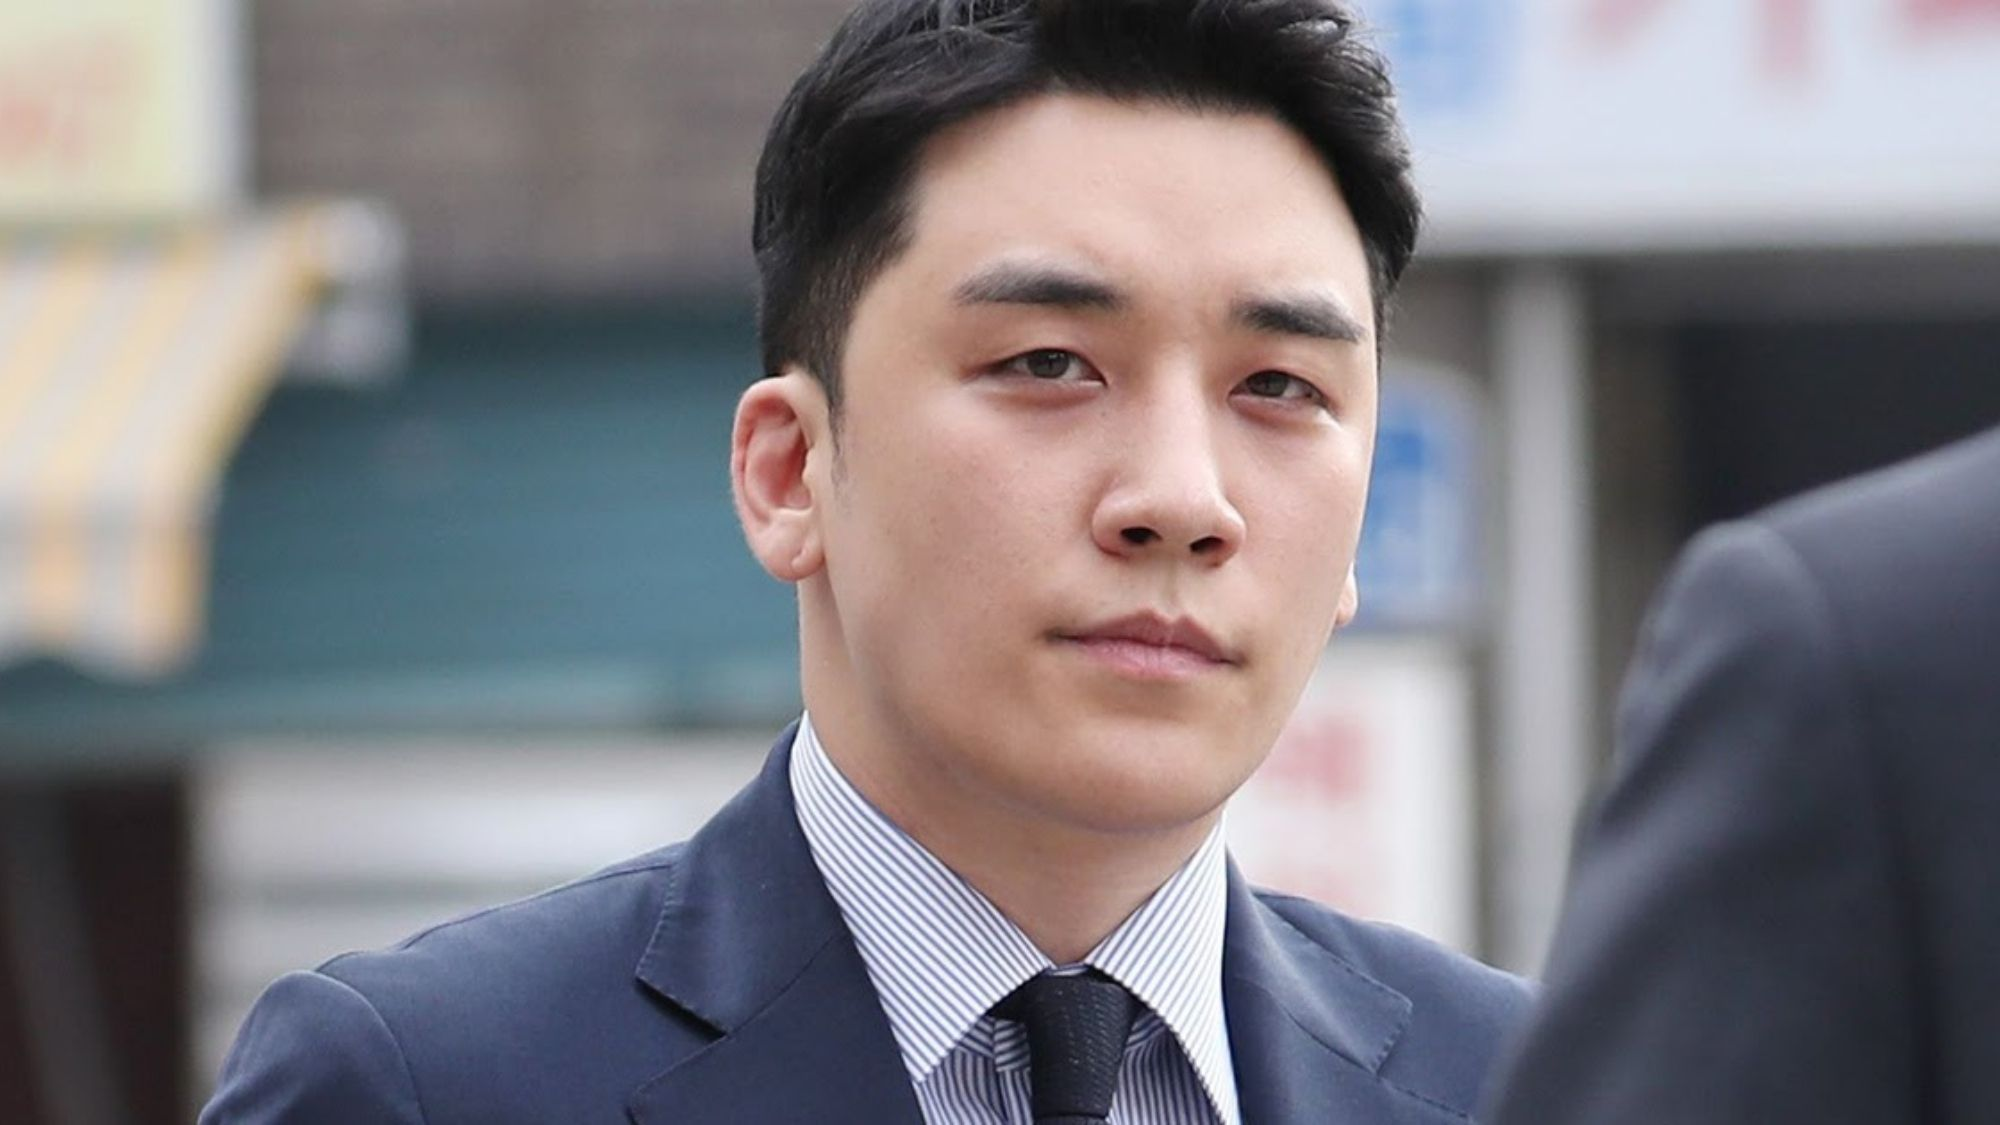 Despite conviction, some fans still convinced ex-Big Bang member Seungri is innocent photo from Koreaboo